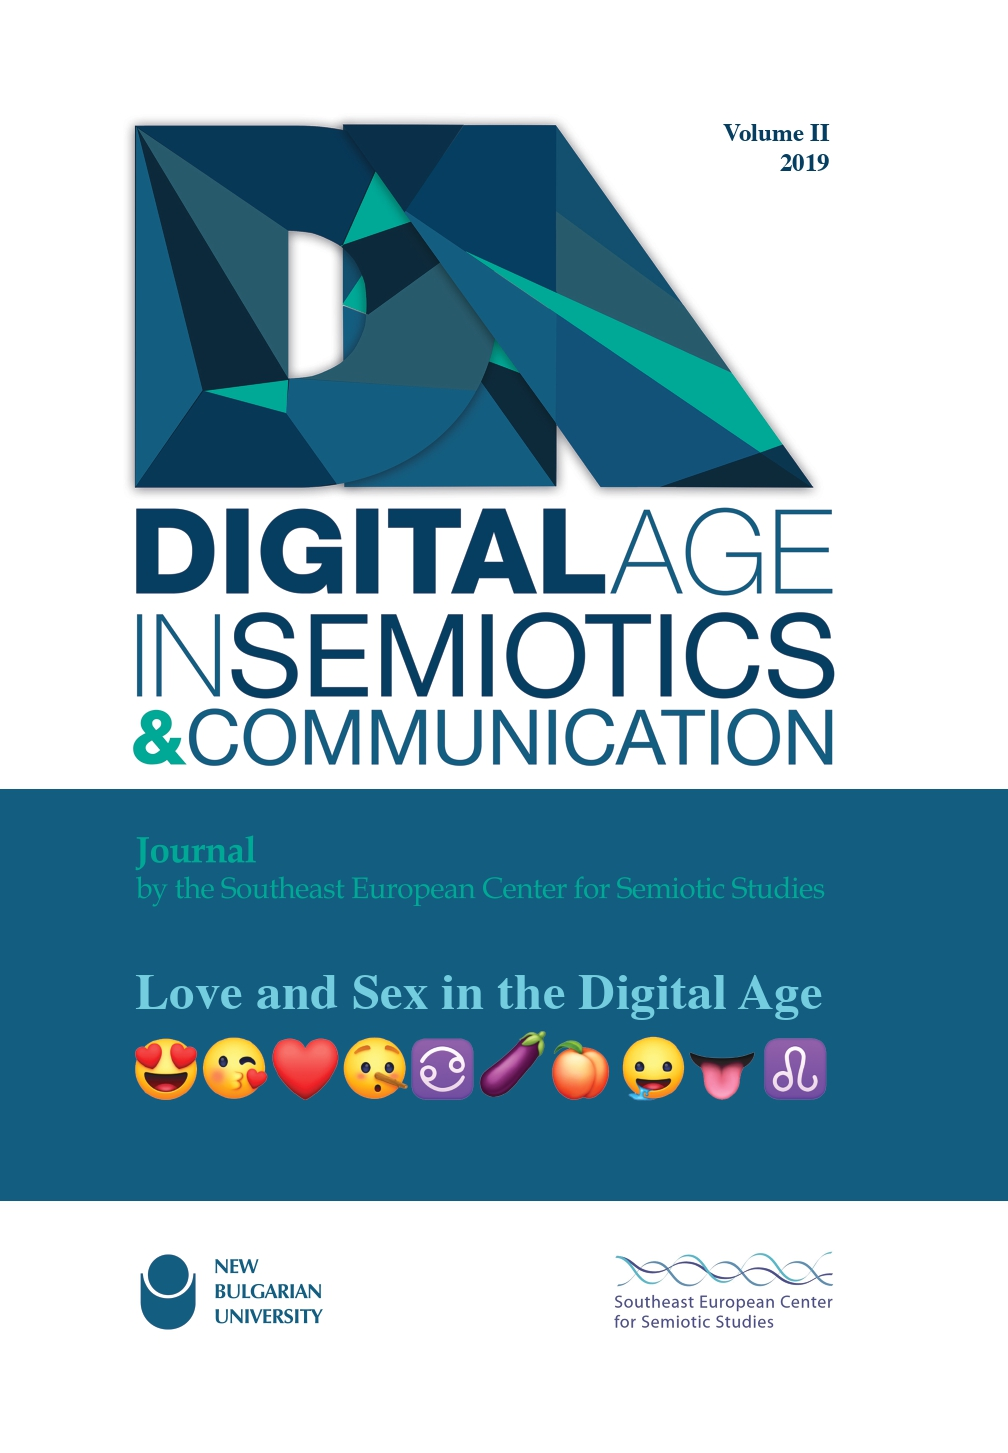 The semiotics of the face in digital dating & A research direction